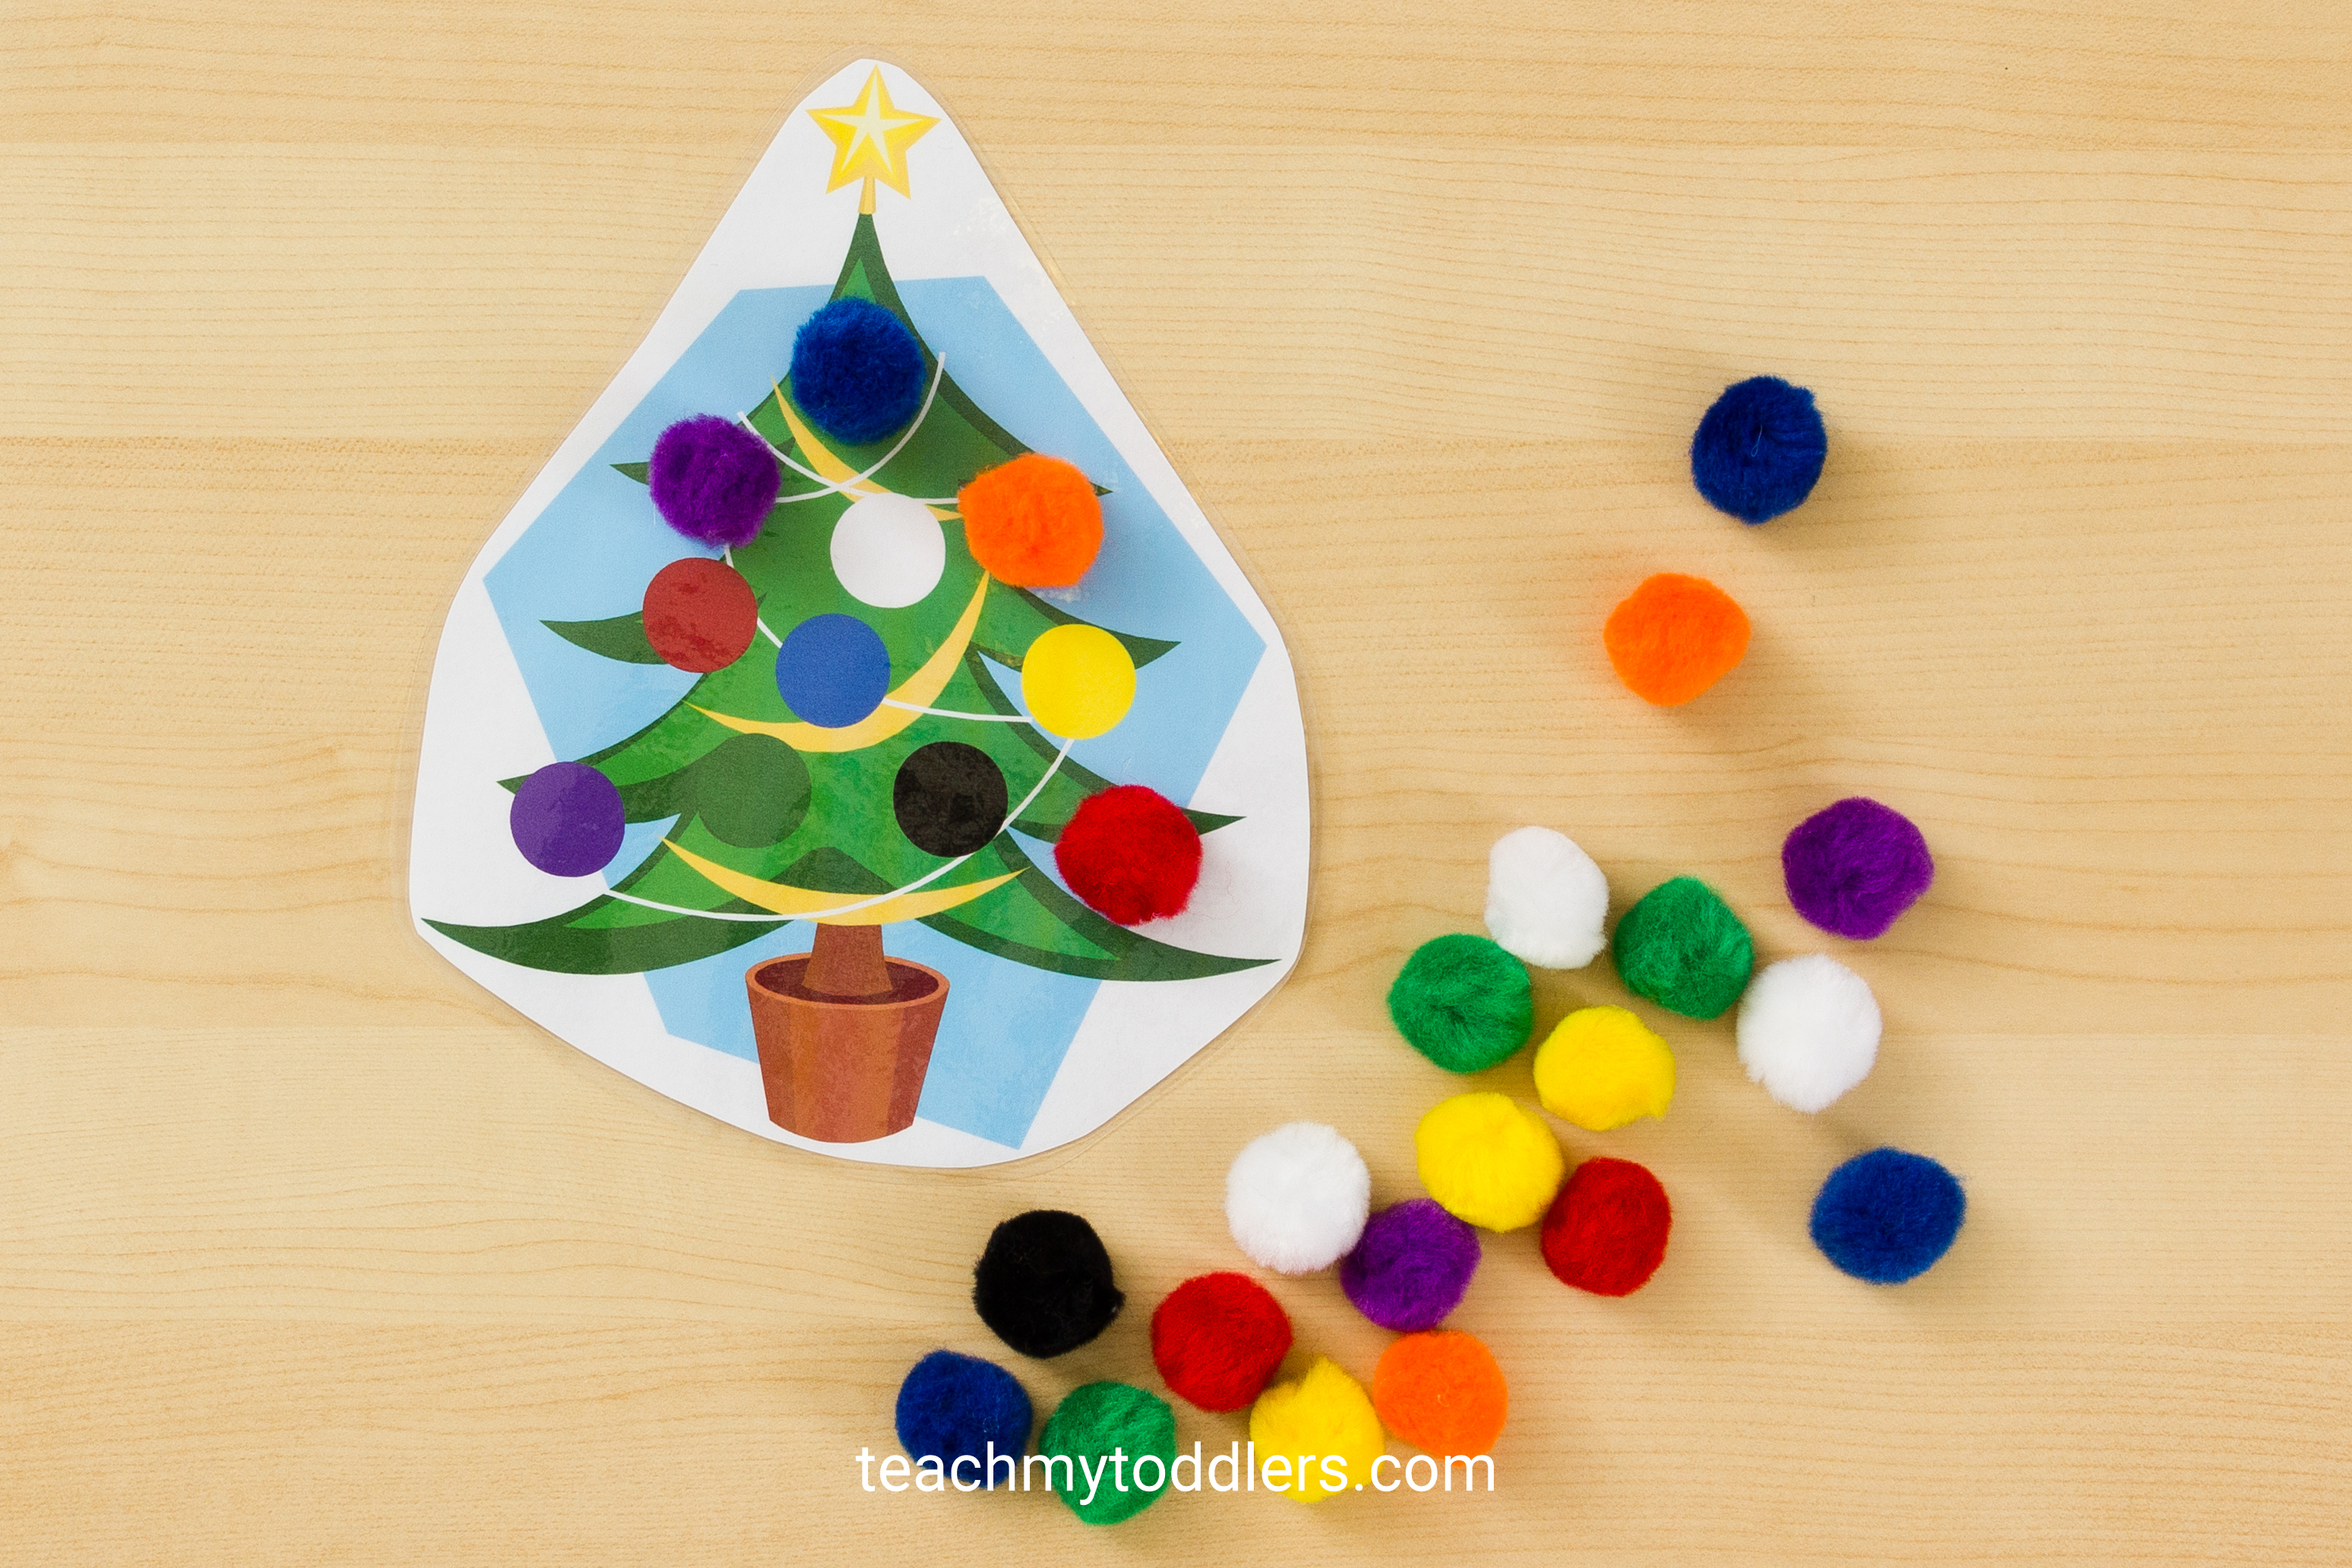 Discover how to use these christmas tree activities to teach your toddlers letters and colors